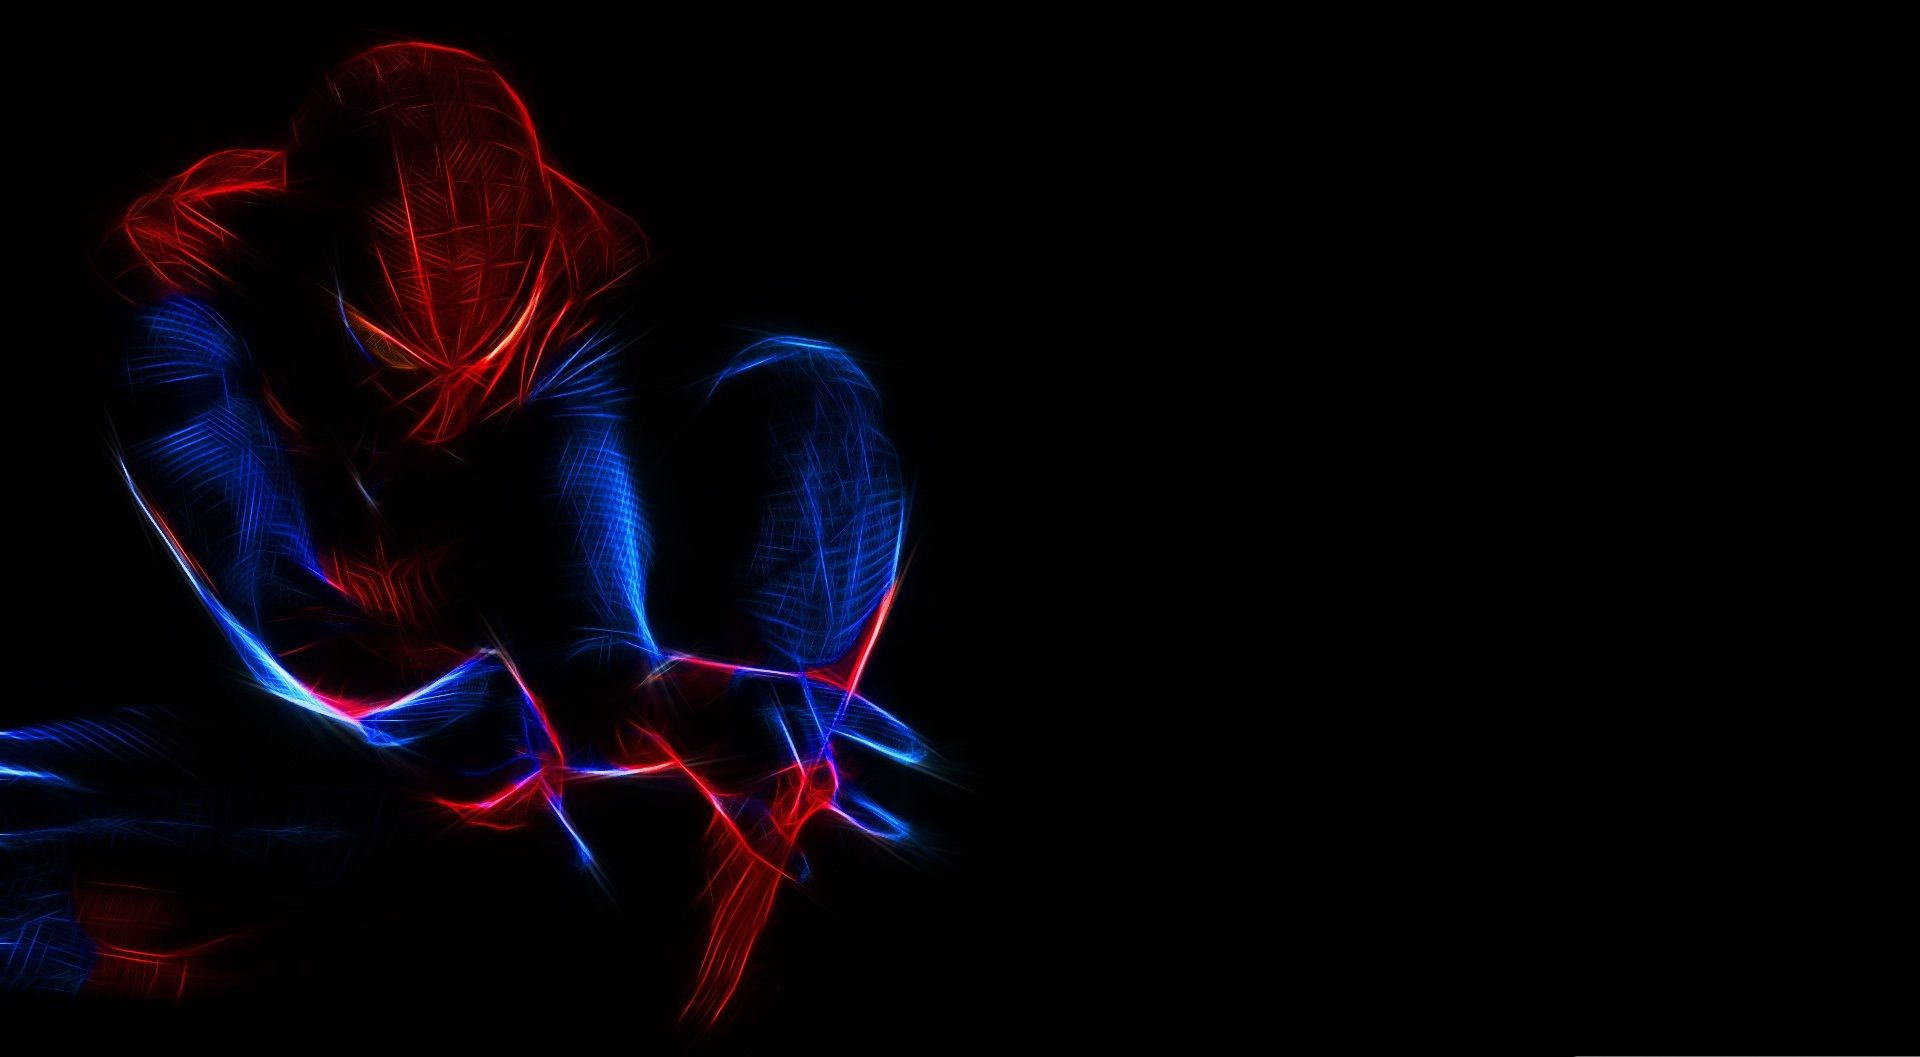 3d Spiderman Hd Background Wallpaper 28 Marvel Wallpaper Wallpaper Pc Hd Wallpapers For Pc